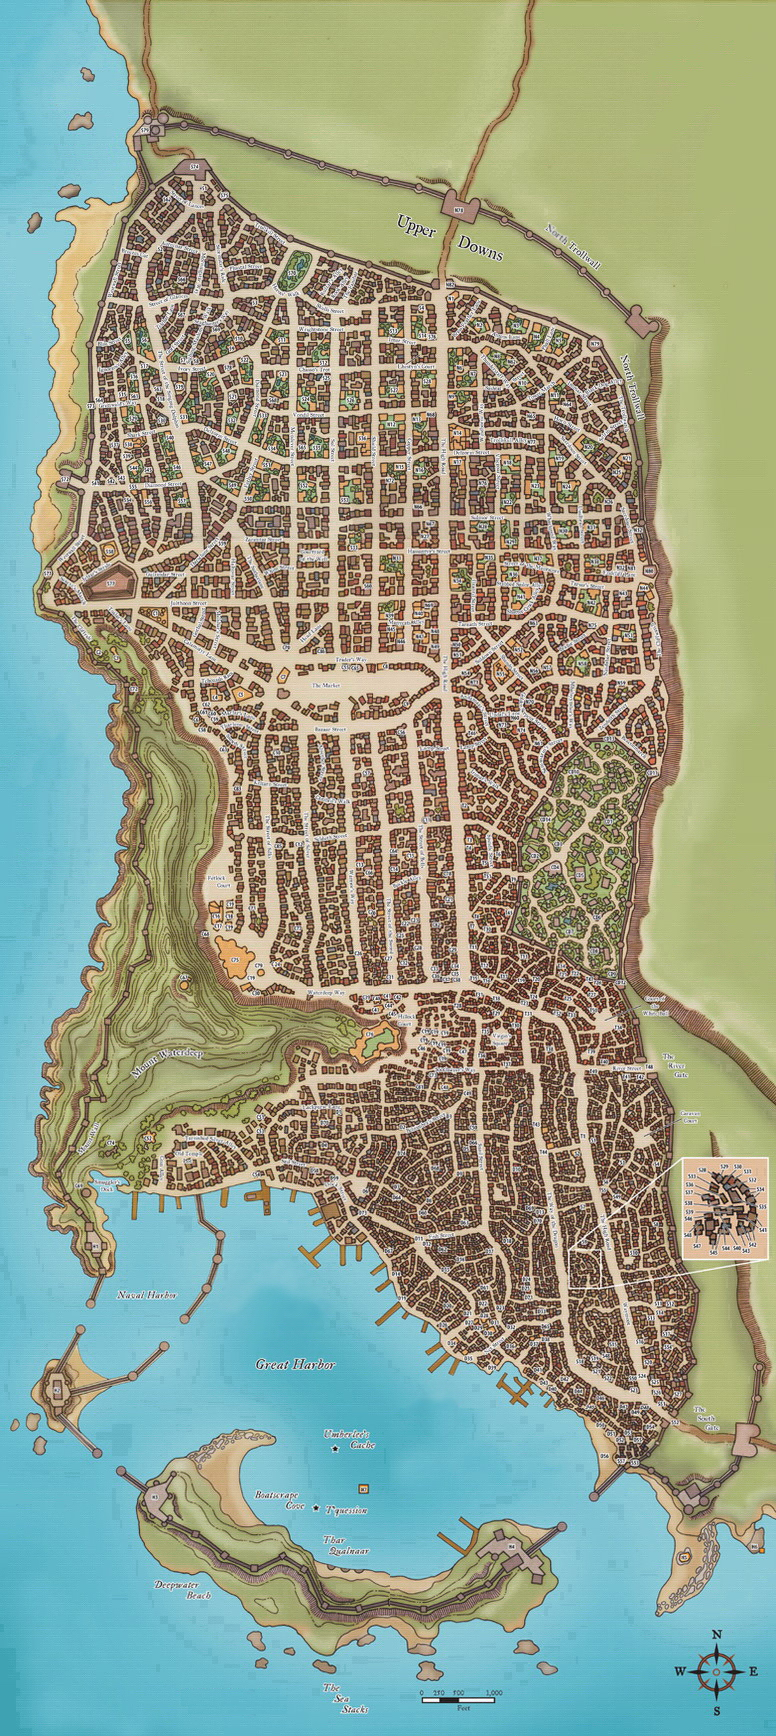 RPG Resources of the Day: 101 Fantasy City, Town and Village Maps